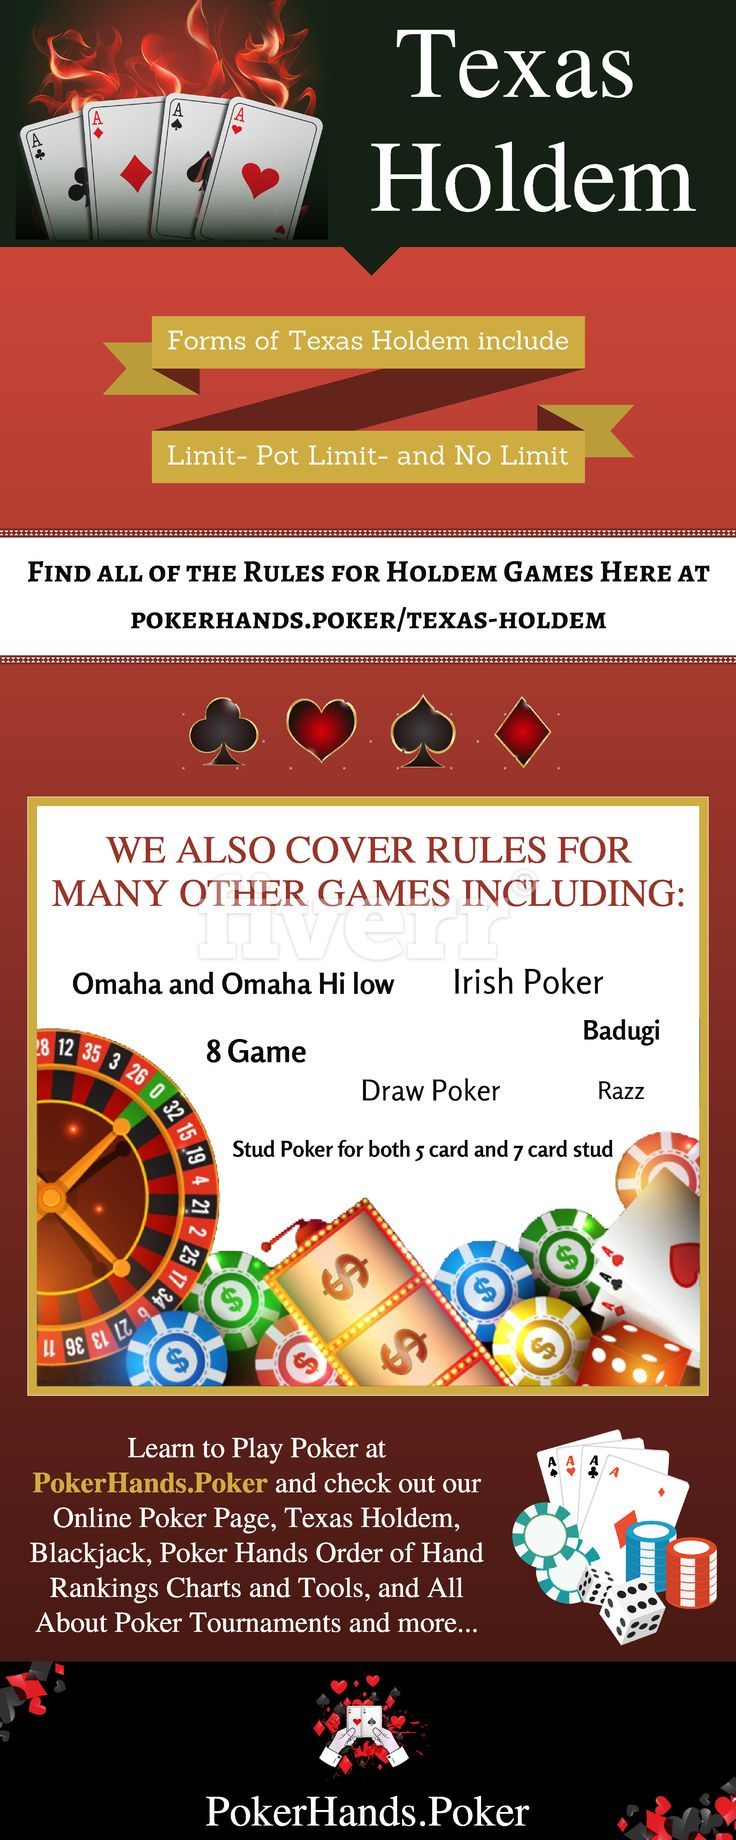 Texas Holdem Live and Online Poker